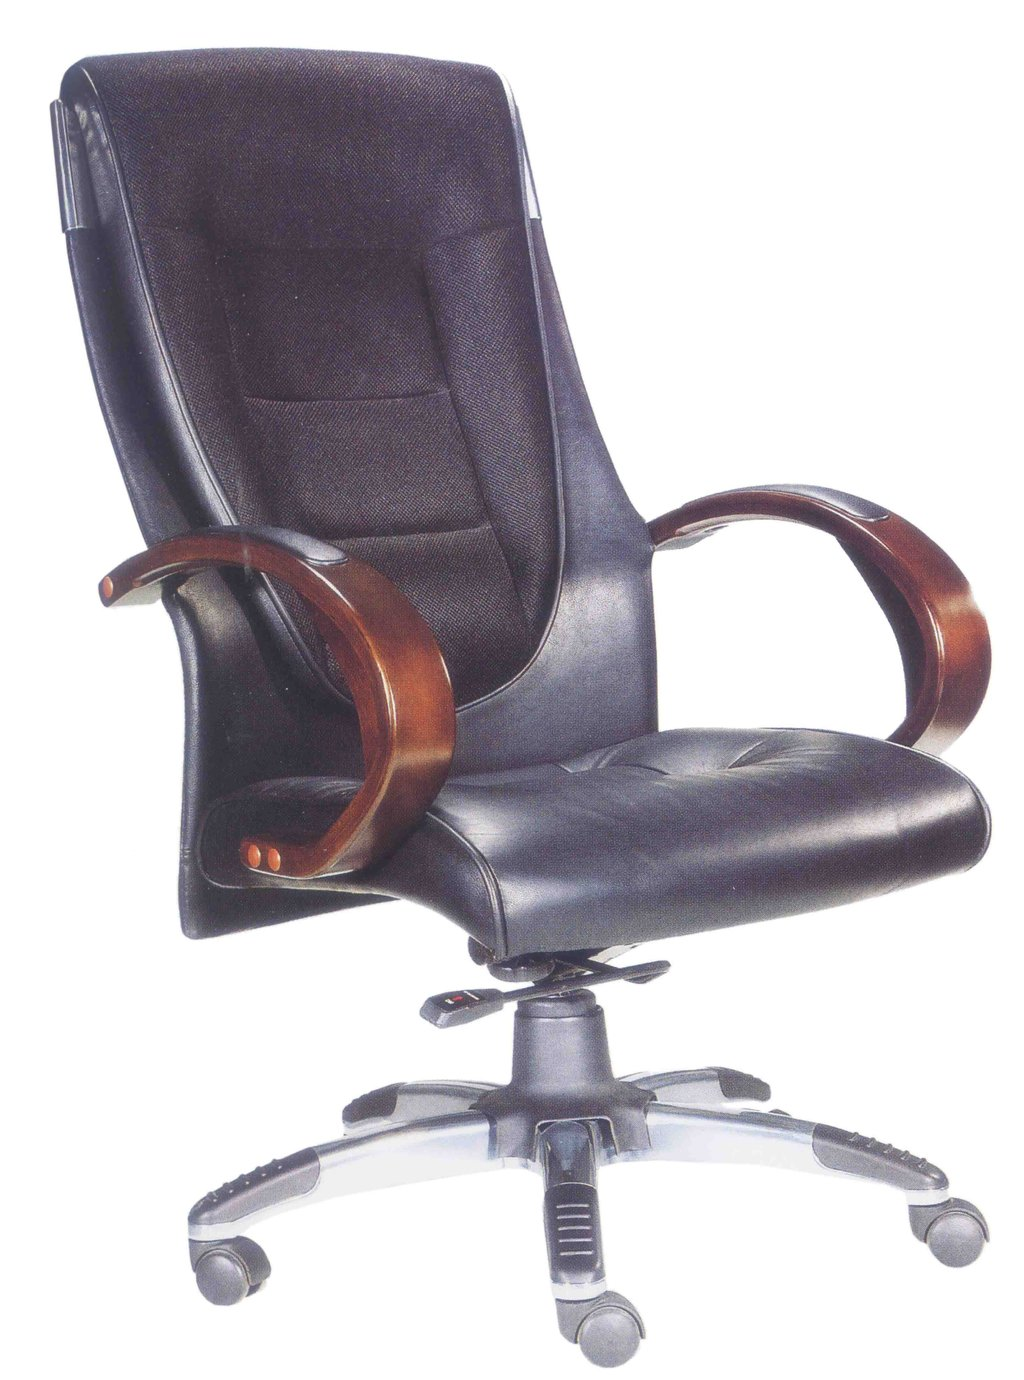 Office Furniture Office Chair Macalinne Rolling Office Chairs Covers